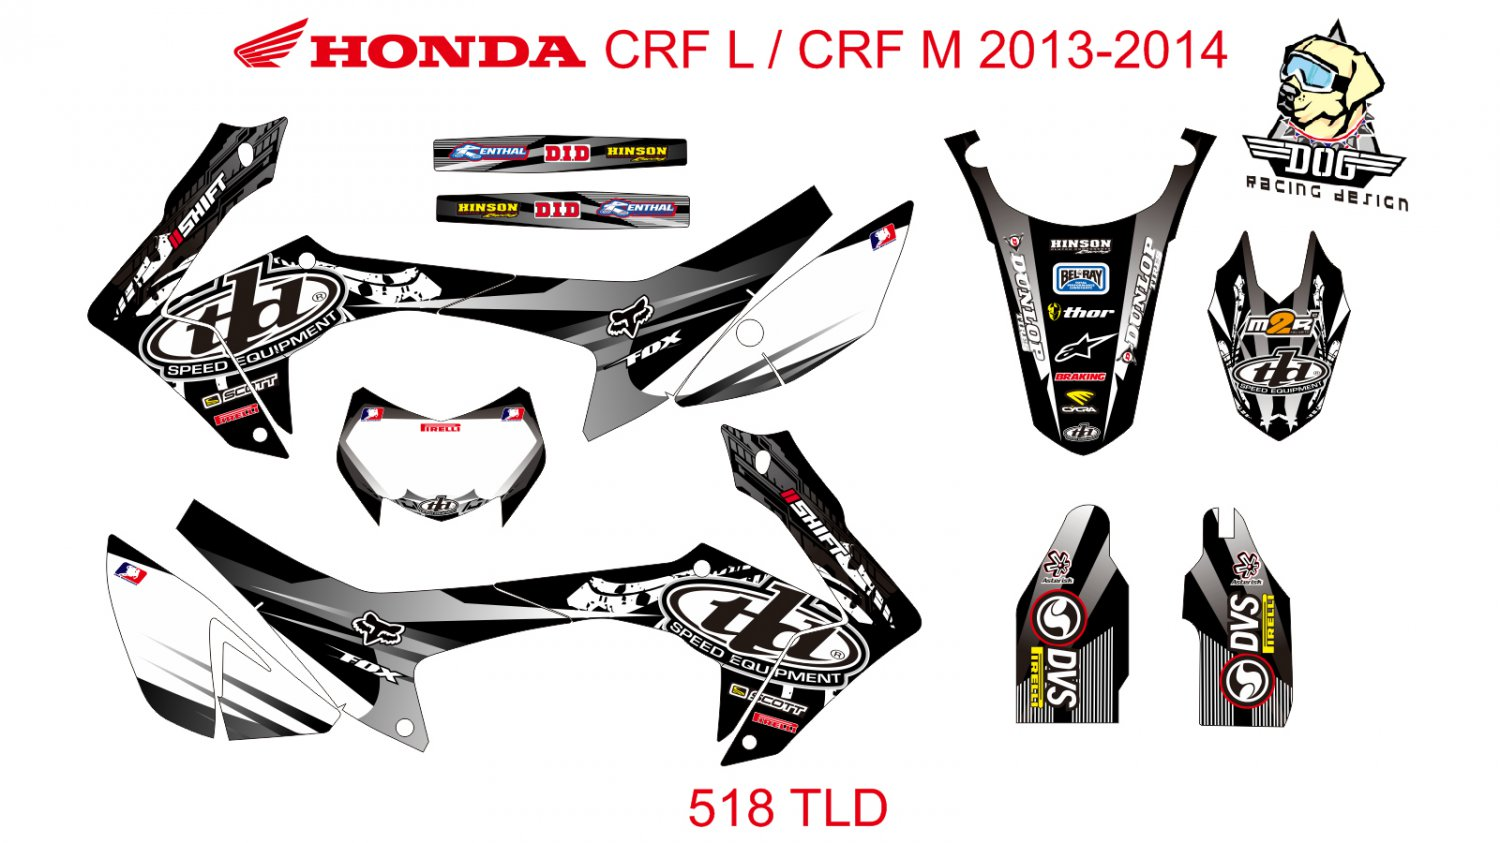 HONDA CRF L CRF M 2013-2014 GRAPHIC DECAL KIT CODE.518